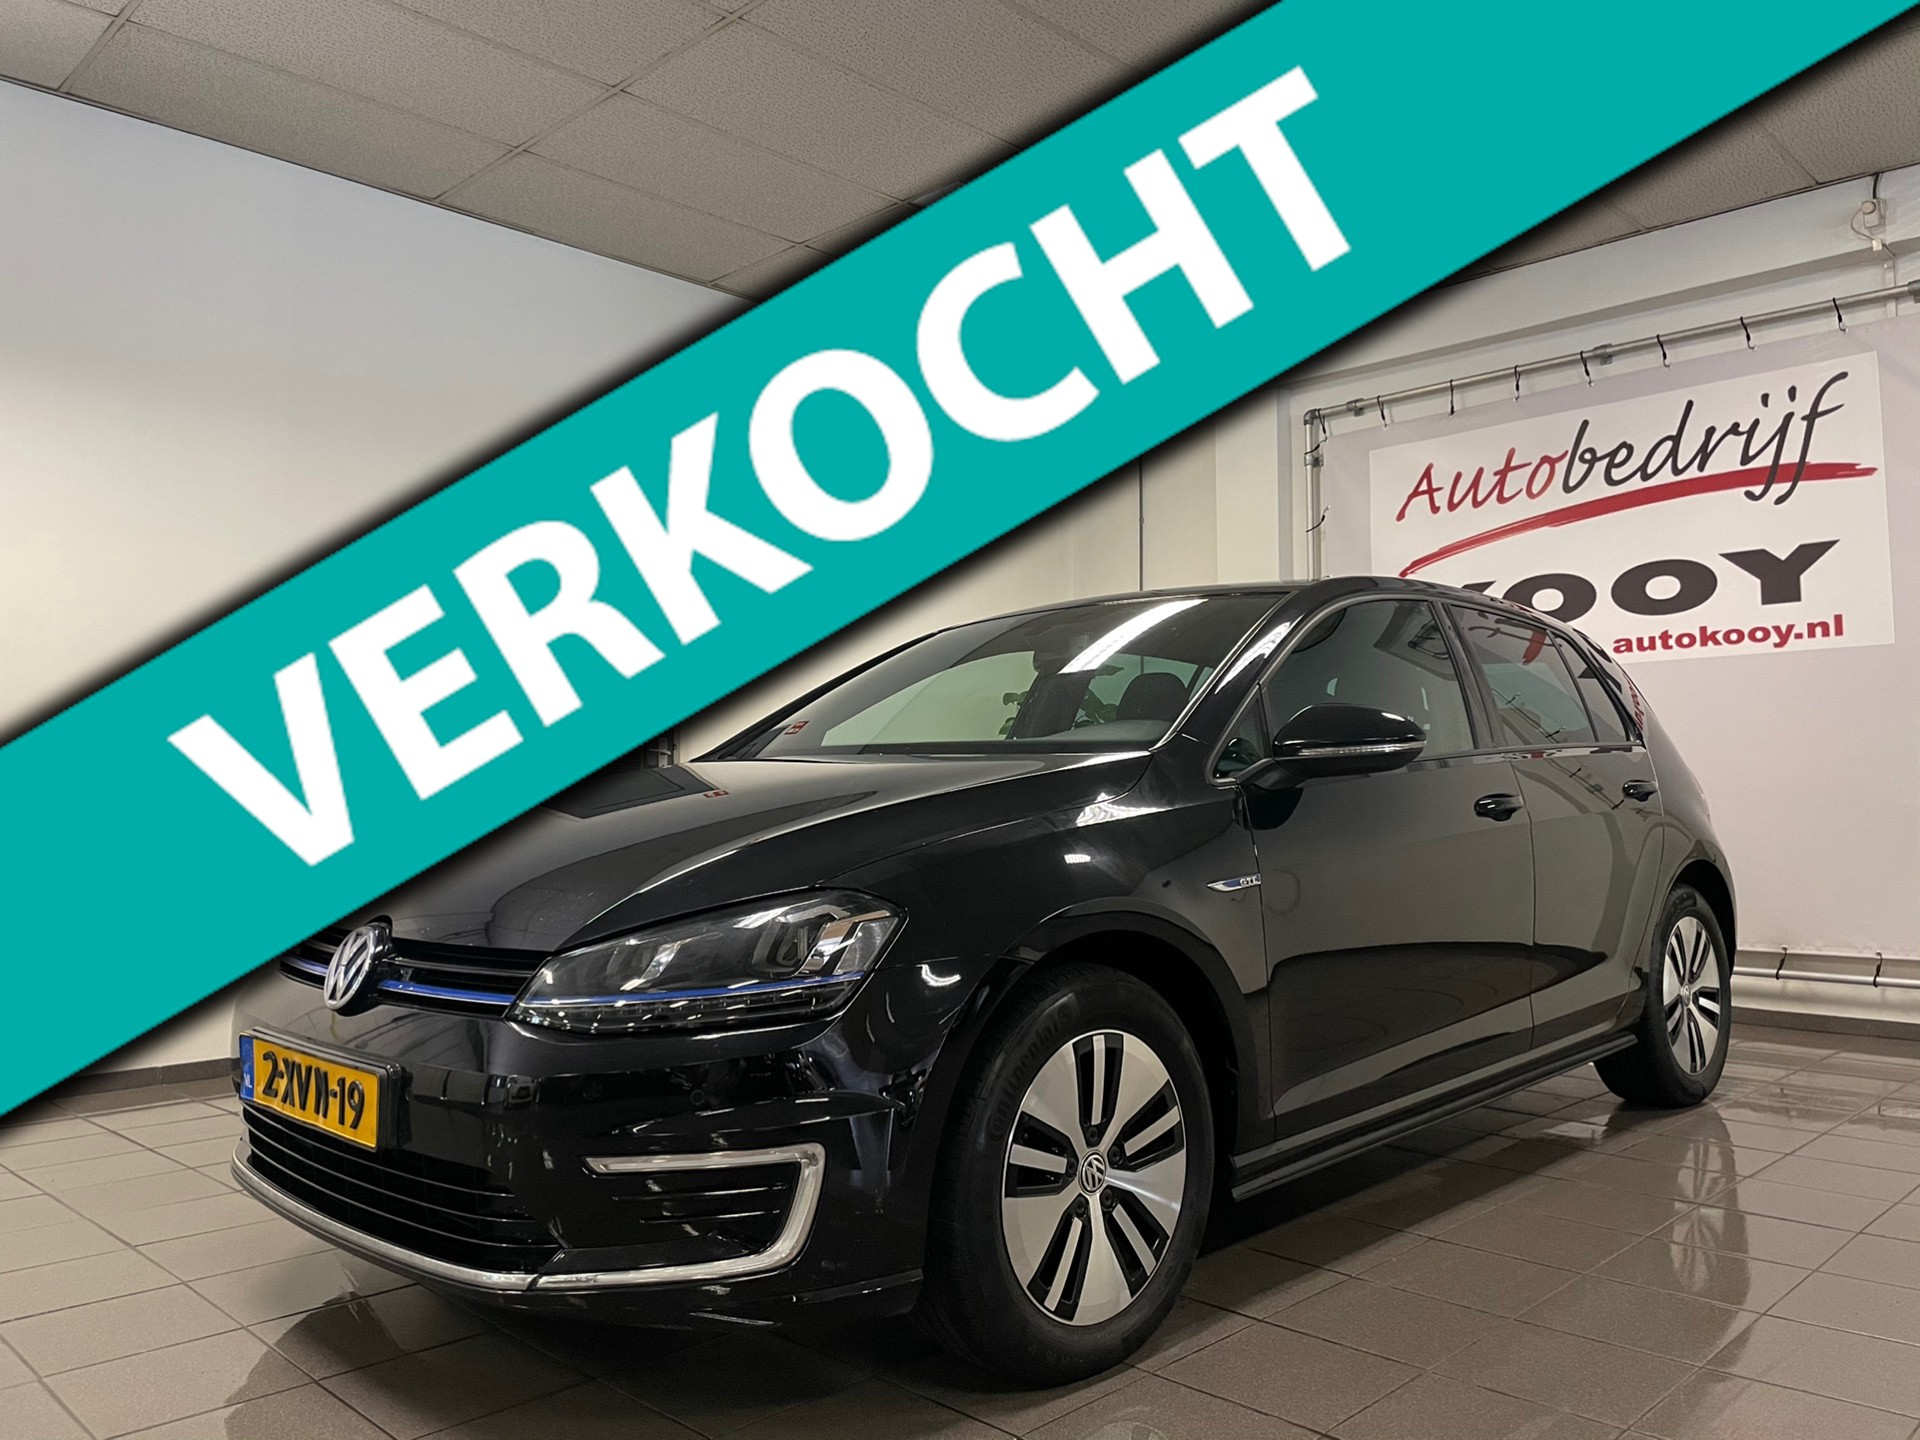 Volkswagen Golf 1.4 TSI GTE * Excl. BTW / Panoramadak / Camera / LED / NL Auto *